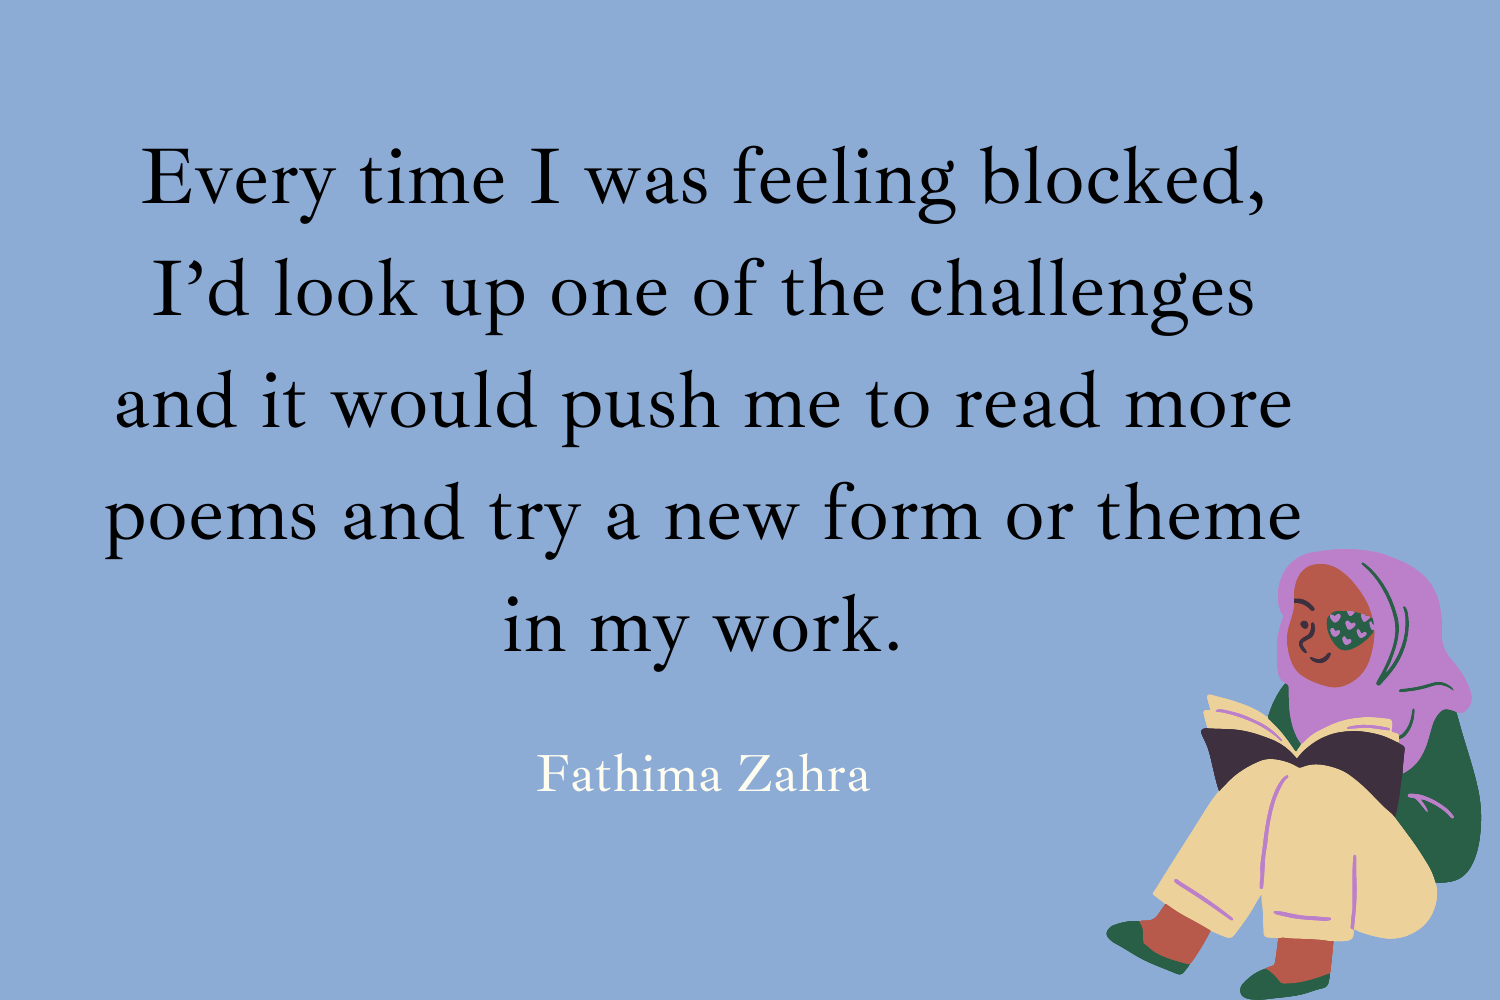 """""""Every time I was feeling blocked, I'd look up one of the challenges and it would push me to read more poems and try a new form or theme in my work."""" Fathima Zahra"""